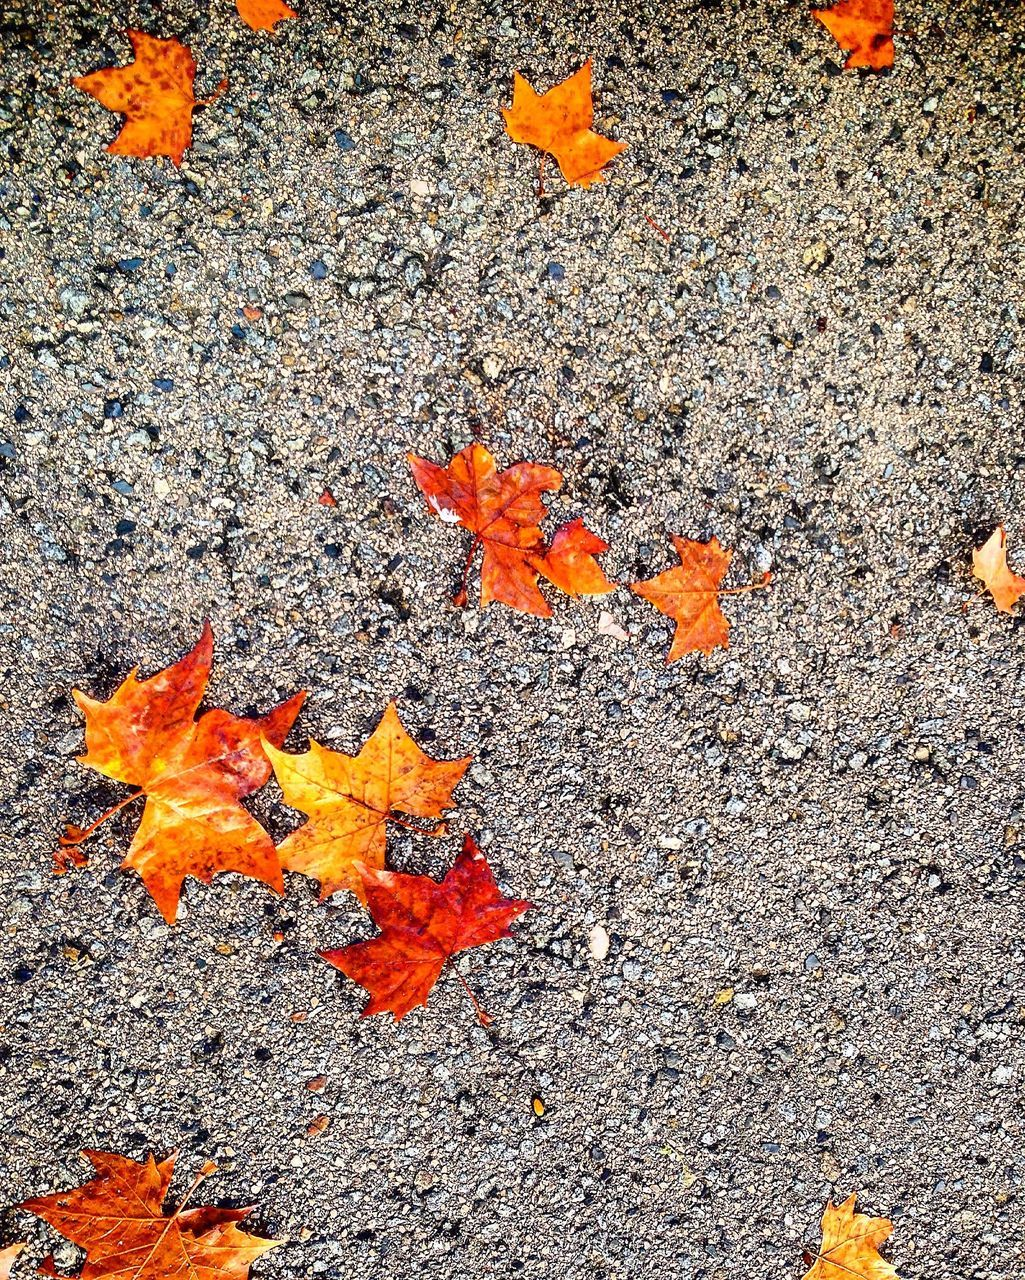 orange color, autumn, high angle view, leaf, outdoors, no people, change, day, nature, maple leaf, beauty in nature, close-up, maple